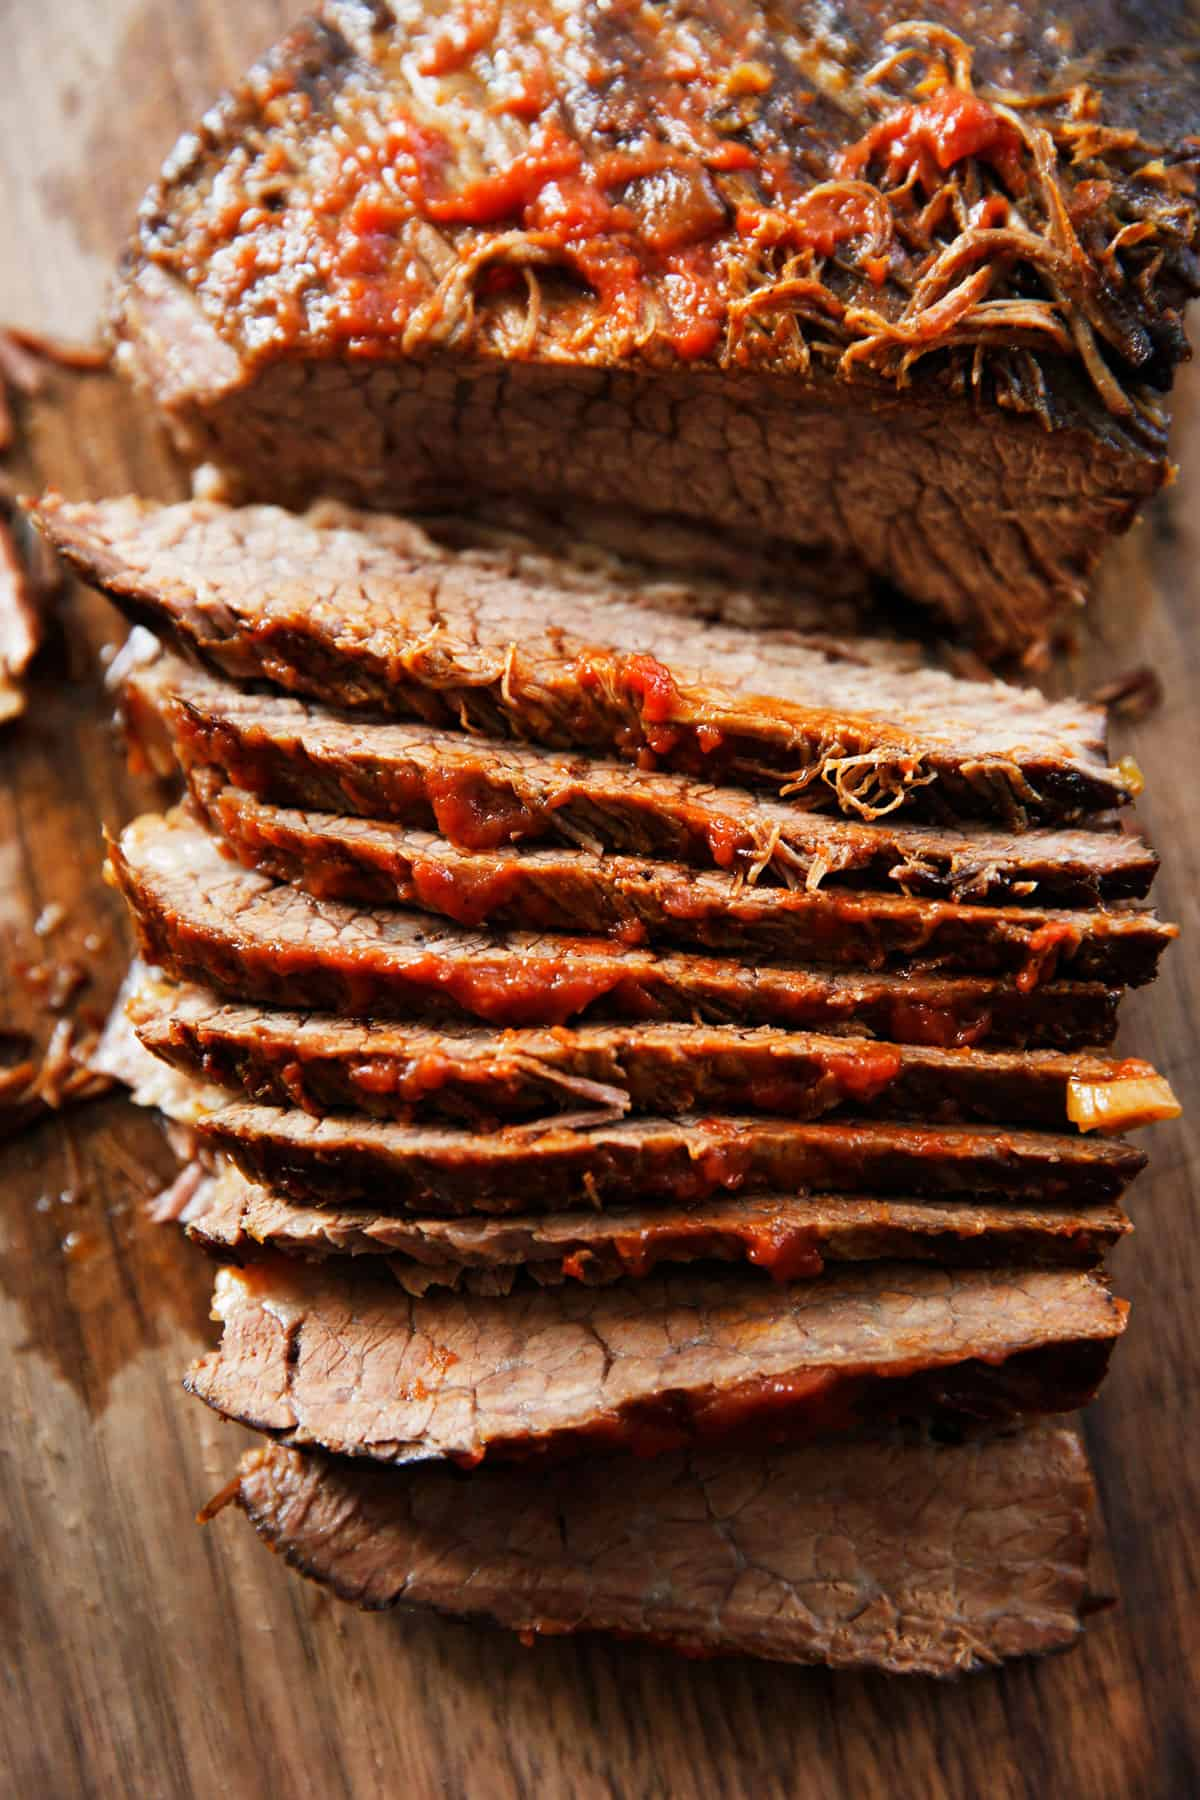 Instant Pot or Slow Cooker Brisket